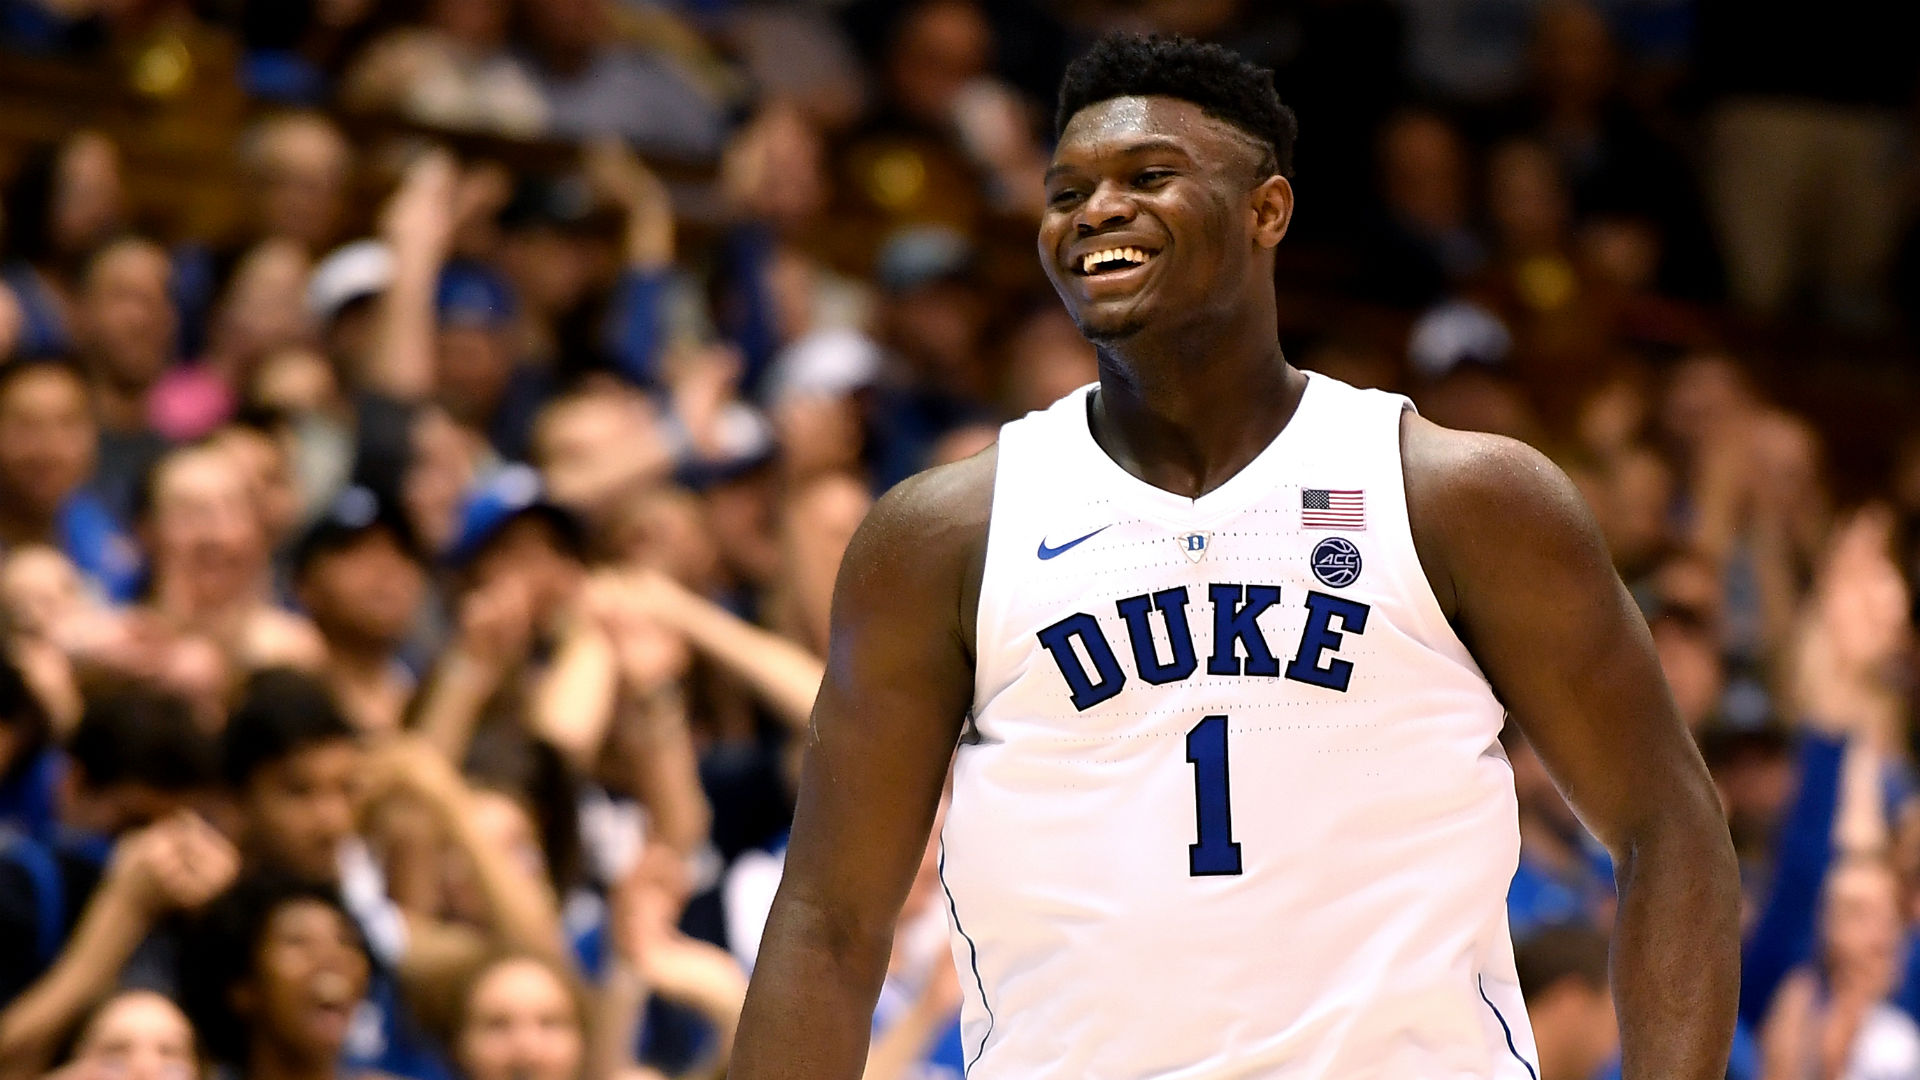 Zion Williamson Ethnicity, Race, Religion, and Nationality